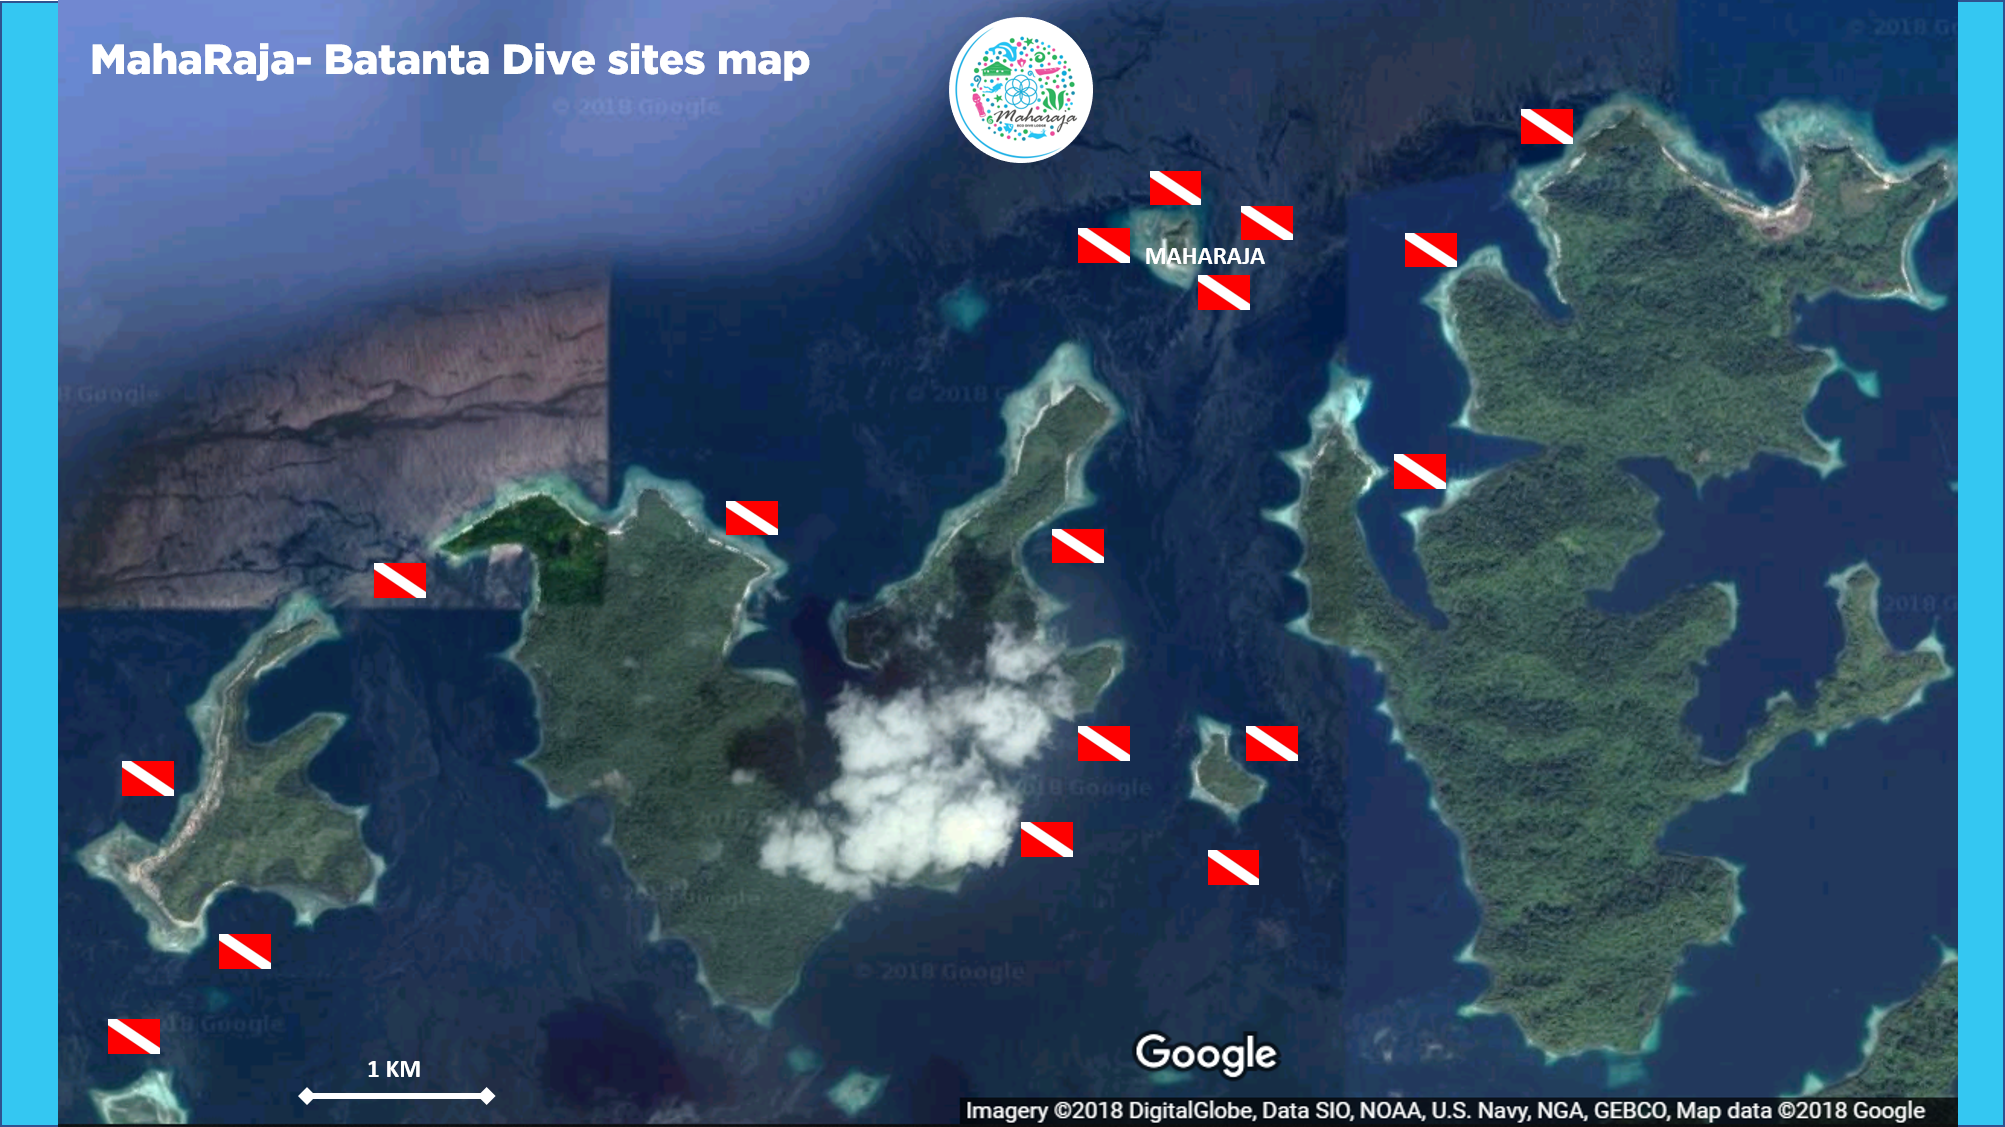 Diving in Raja Ampat with the MahaRaja Eco Dive Lodge - Batanta dive sites map